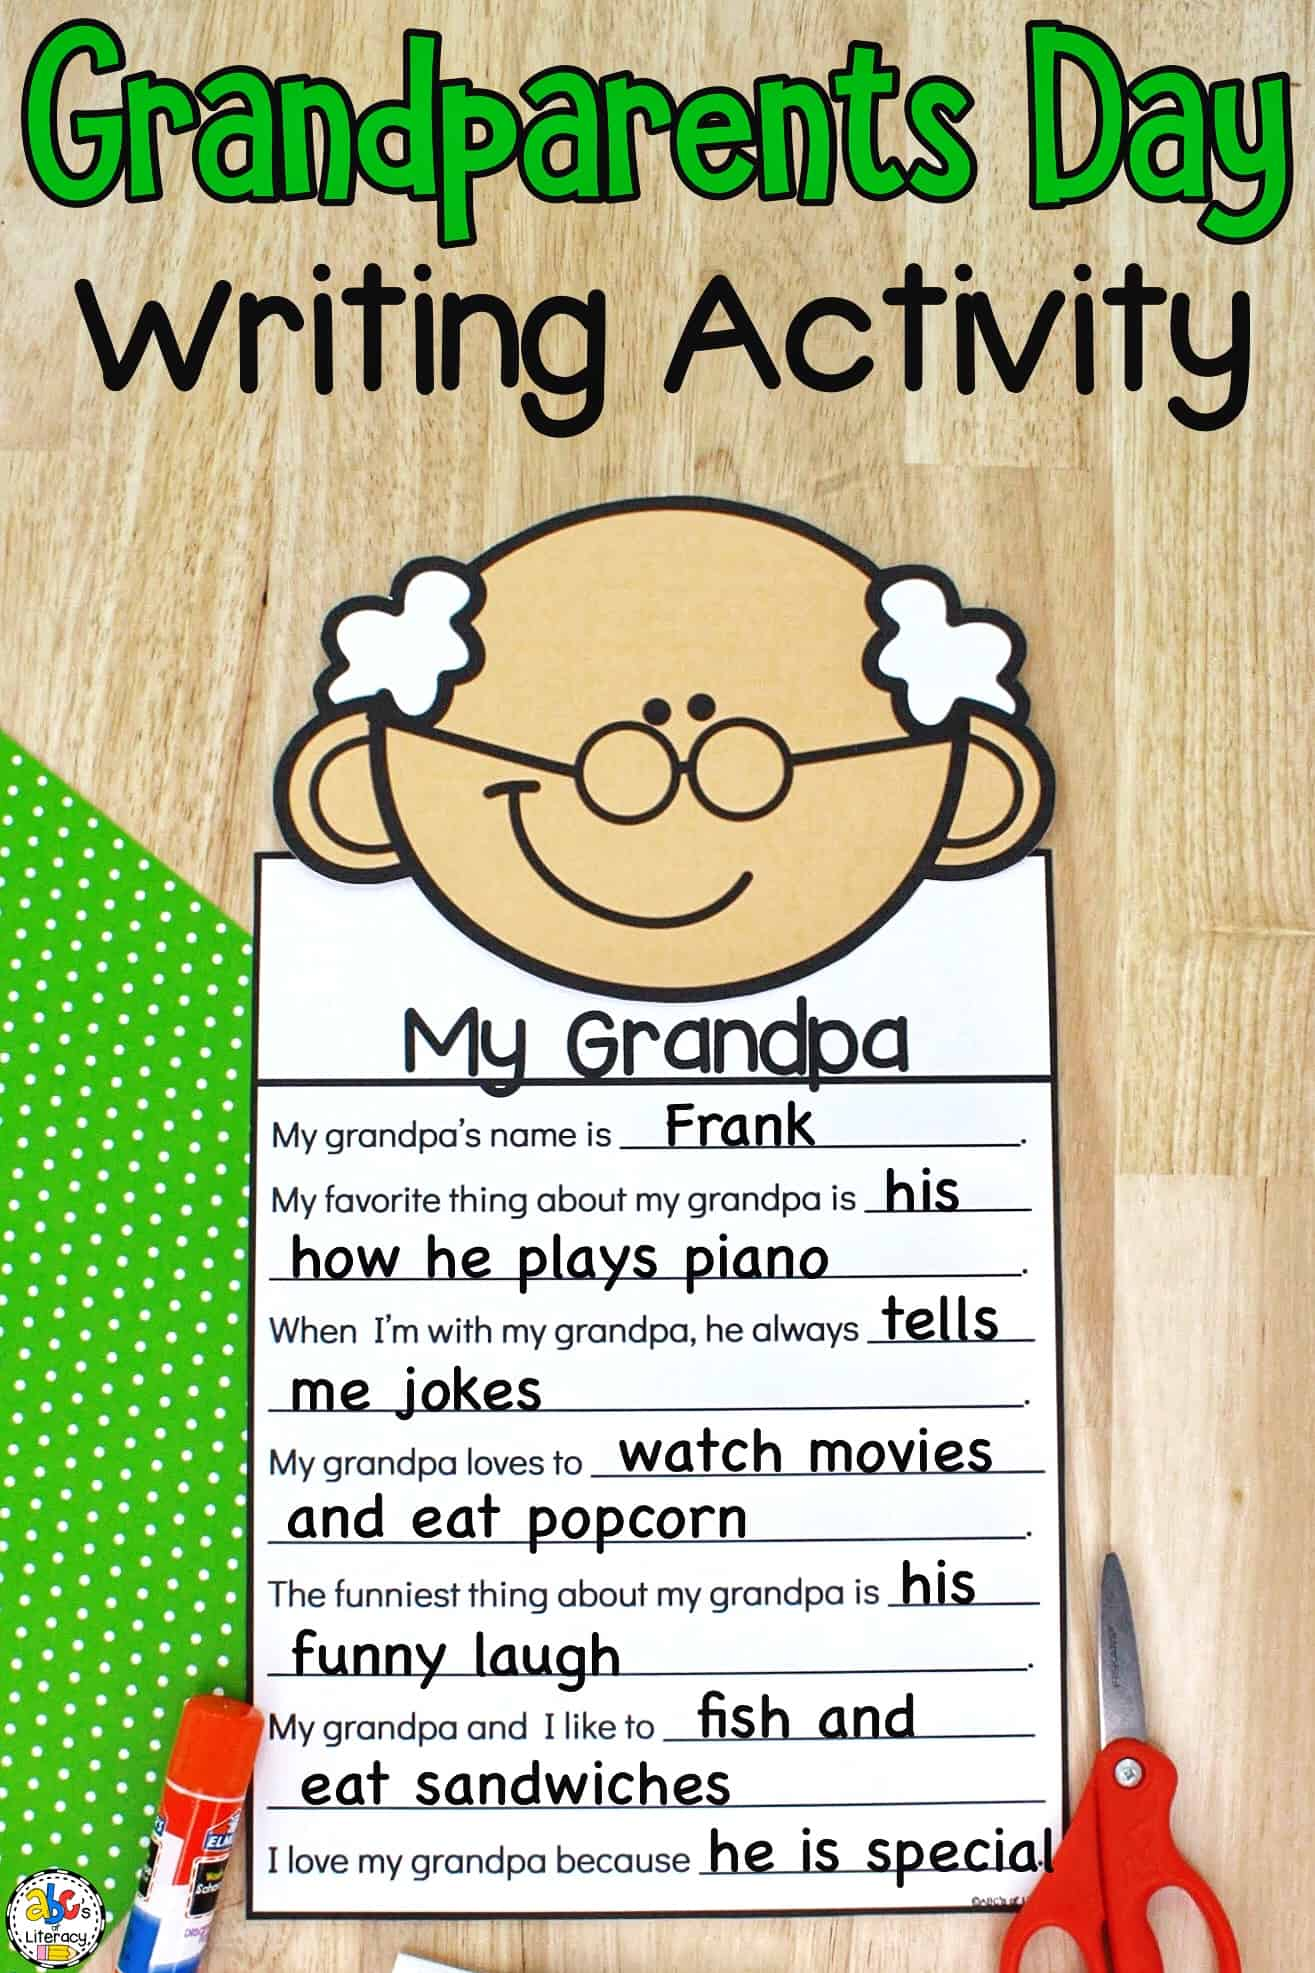 Writing Activity for Kids